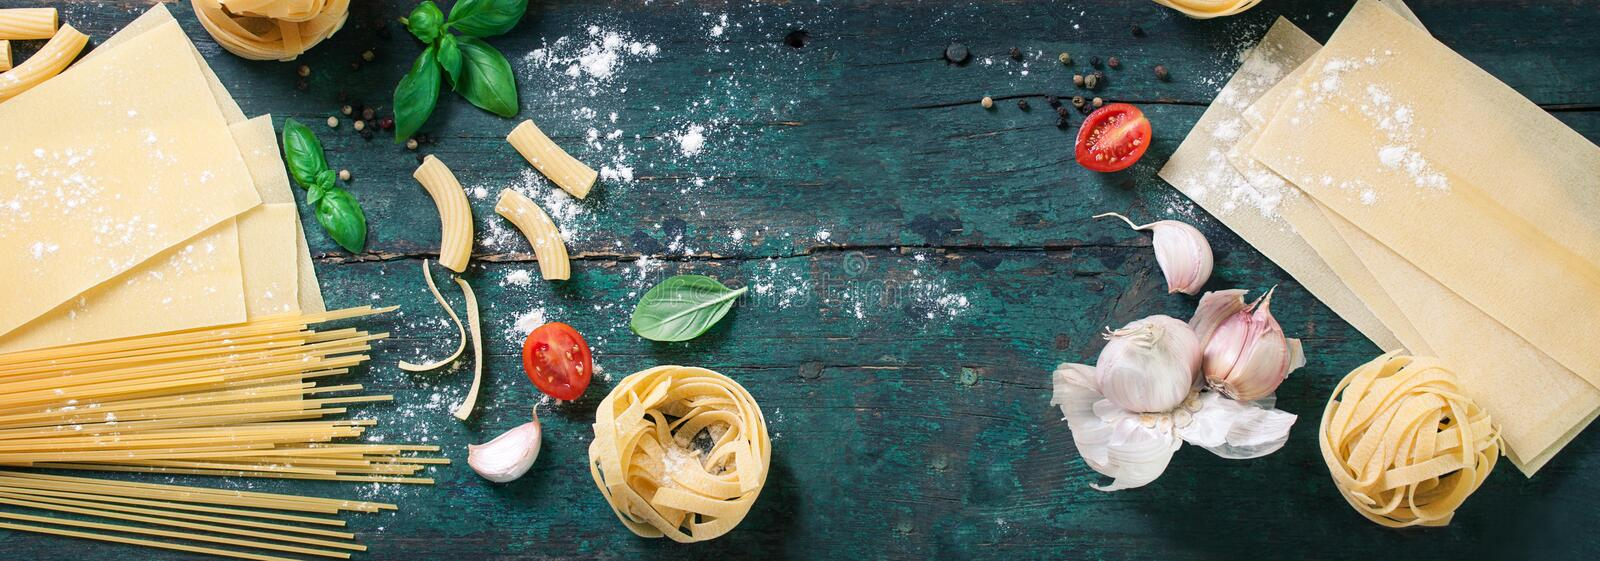 Italian food background with different types of pasta, health or vegetarian concept. Top view with copy space, toned royalty free stock image